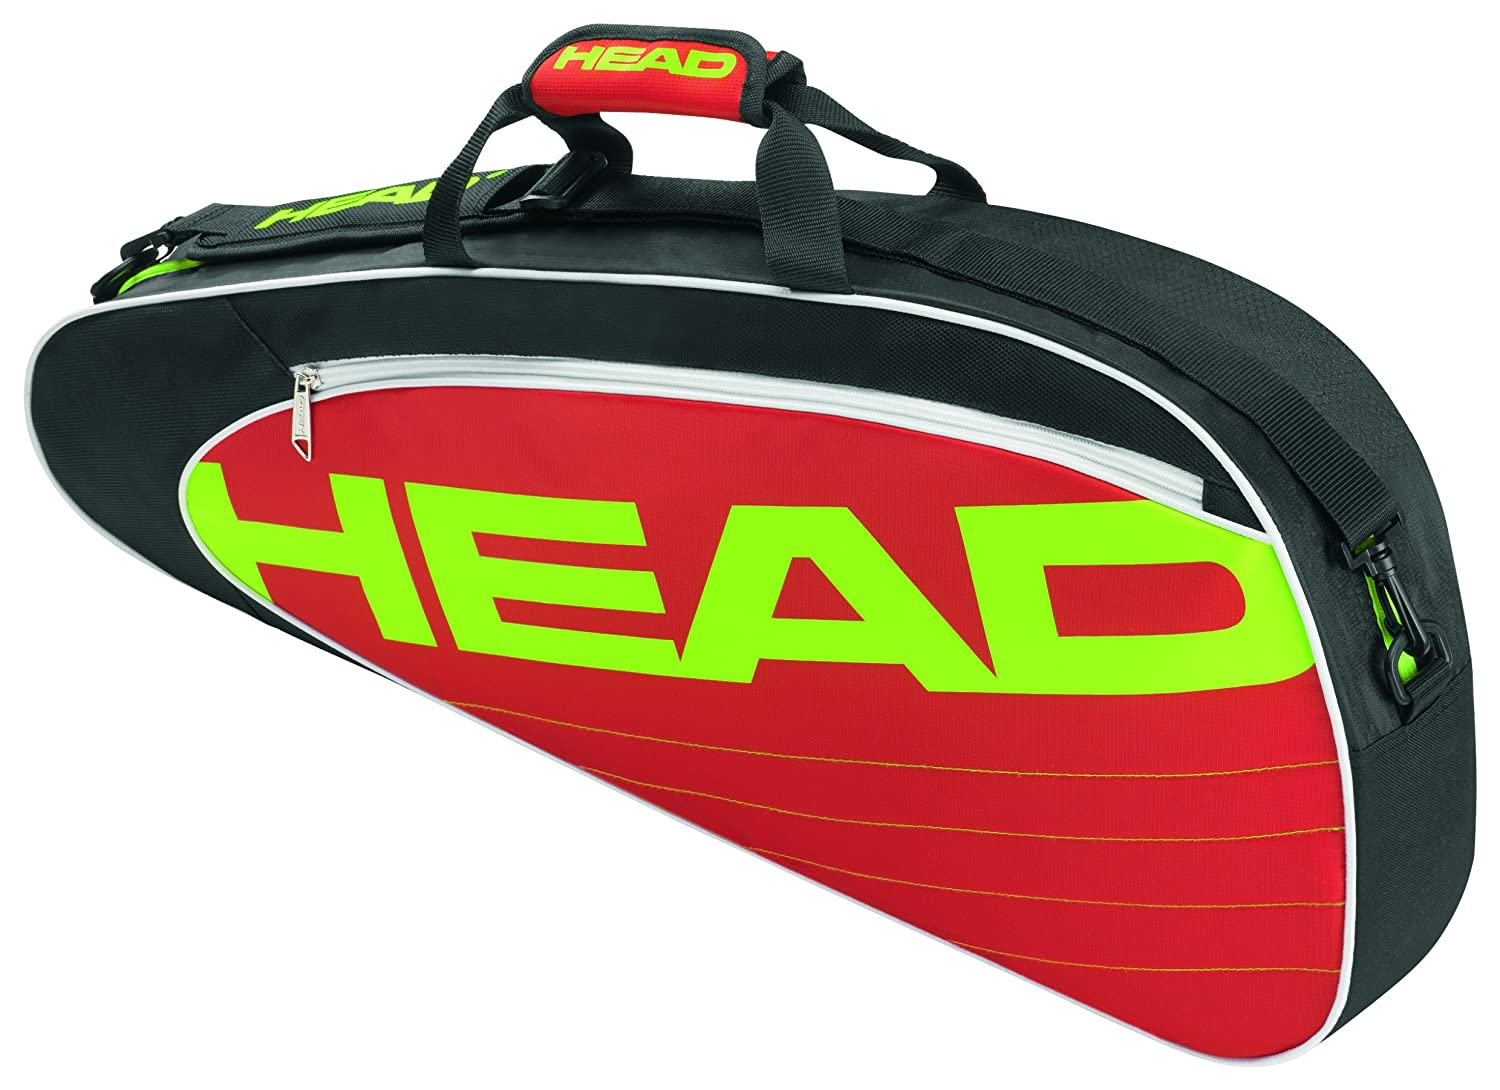 fb8a0486a4 Buy Head Elite Pro 3 pack Tennis Bag Black Red Online at Low Prices in  India - Amazon.in